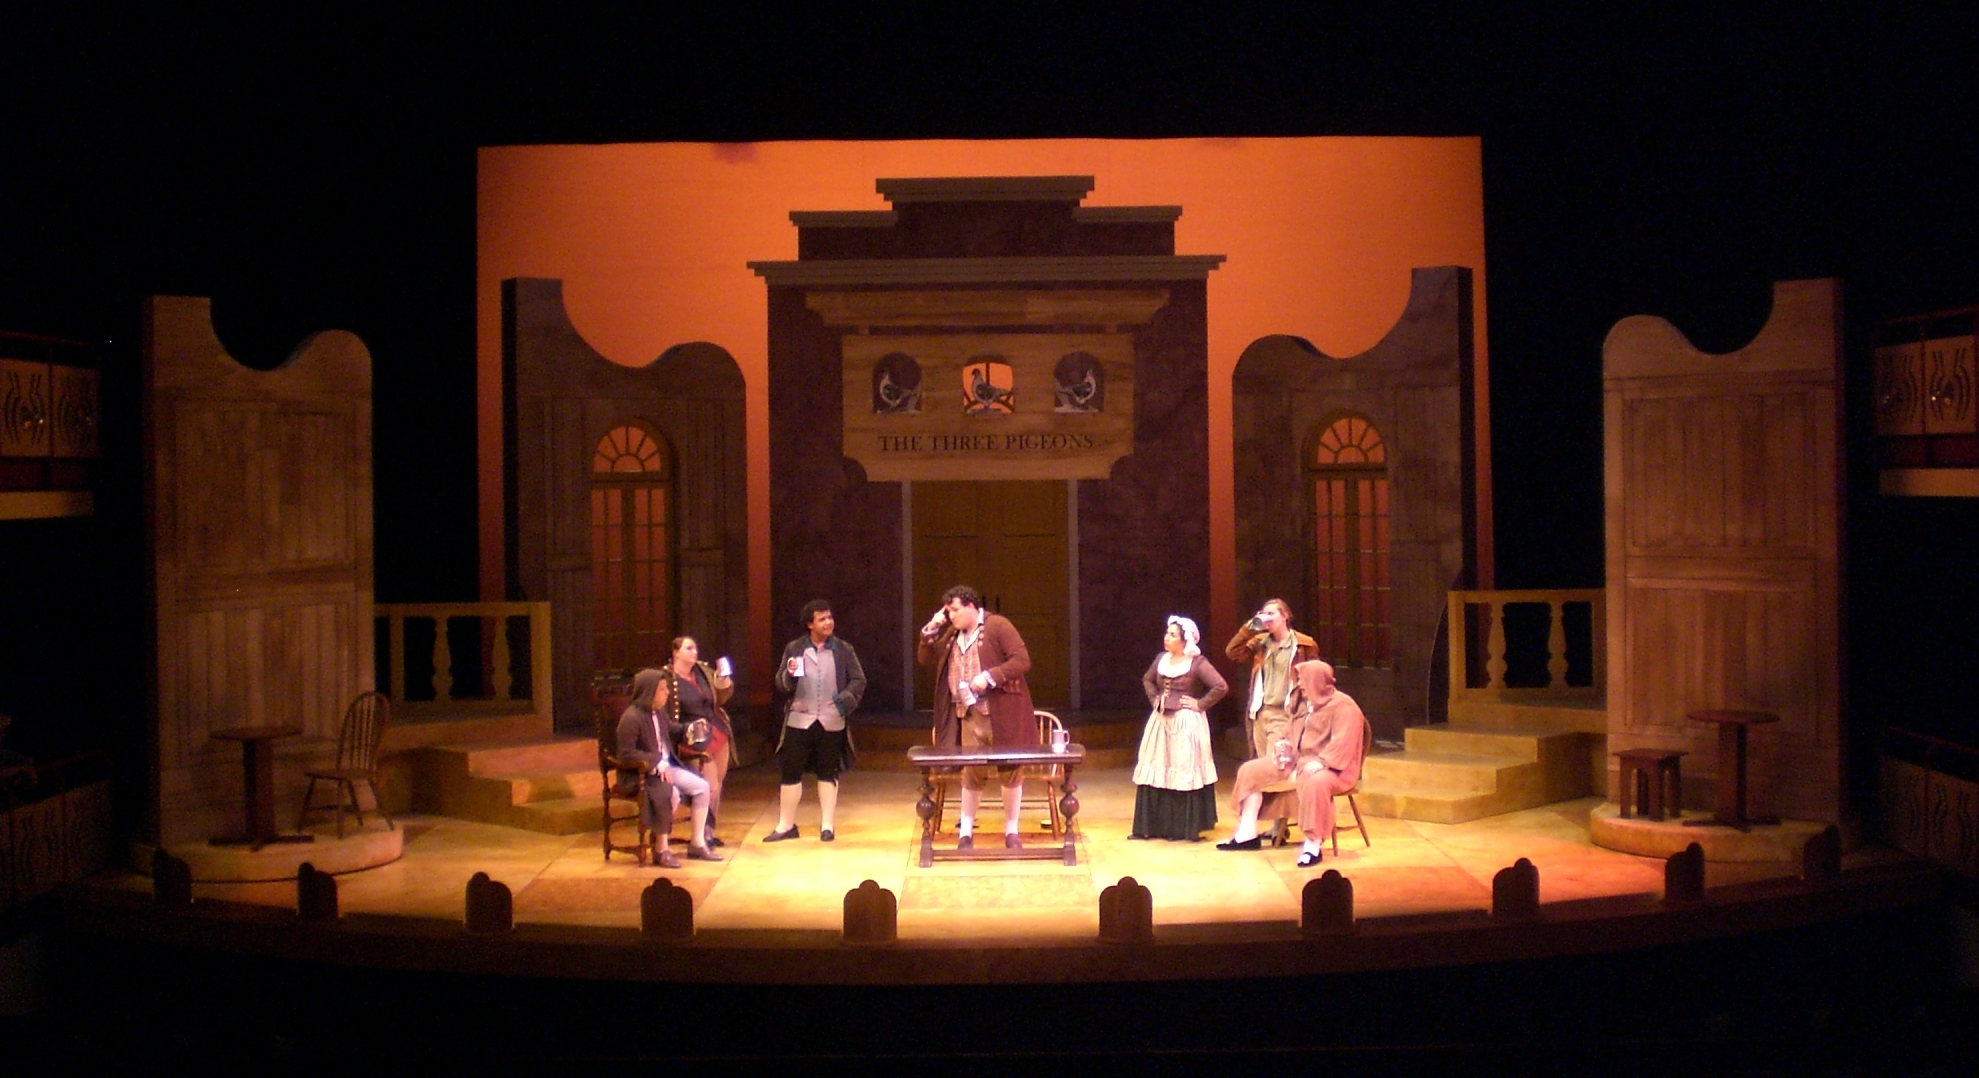 SCENIC DESIGN: She Stoops to Conquer - Tavern Scene Whittier College 2012